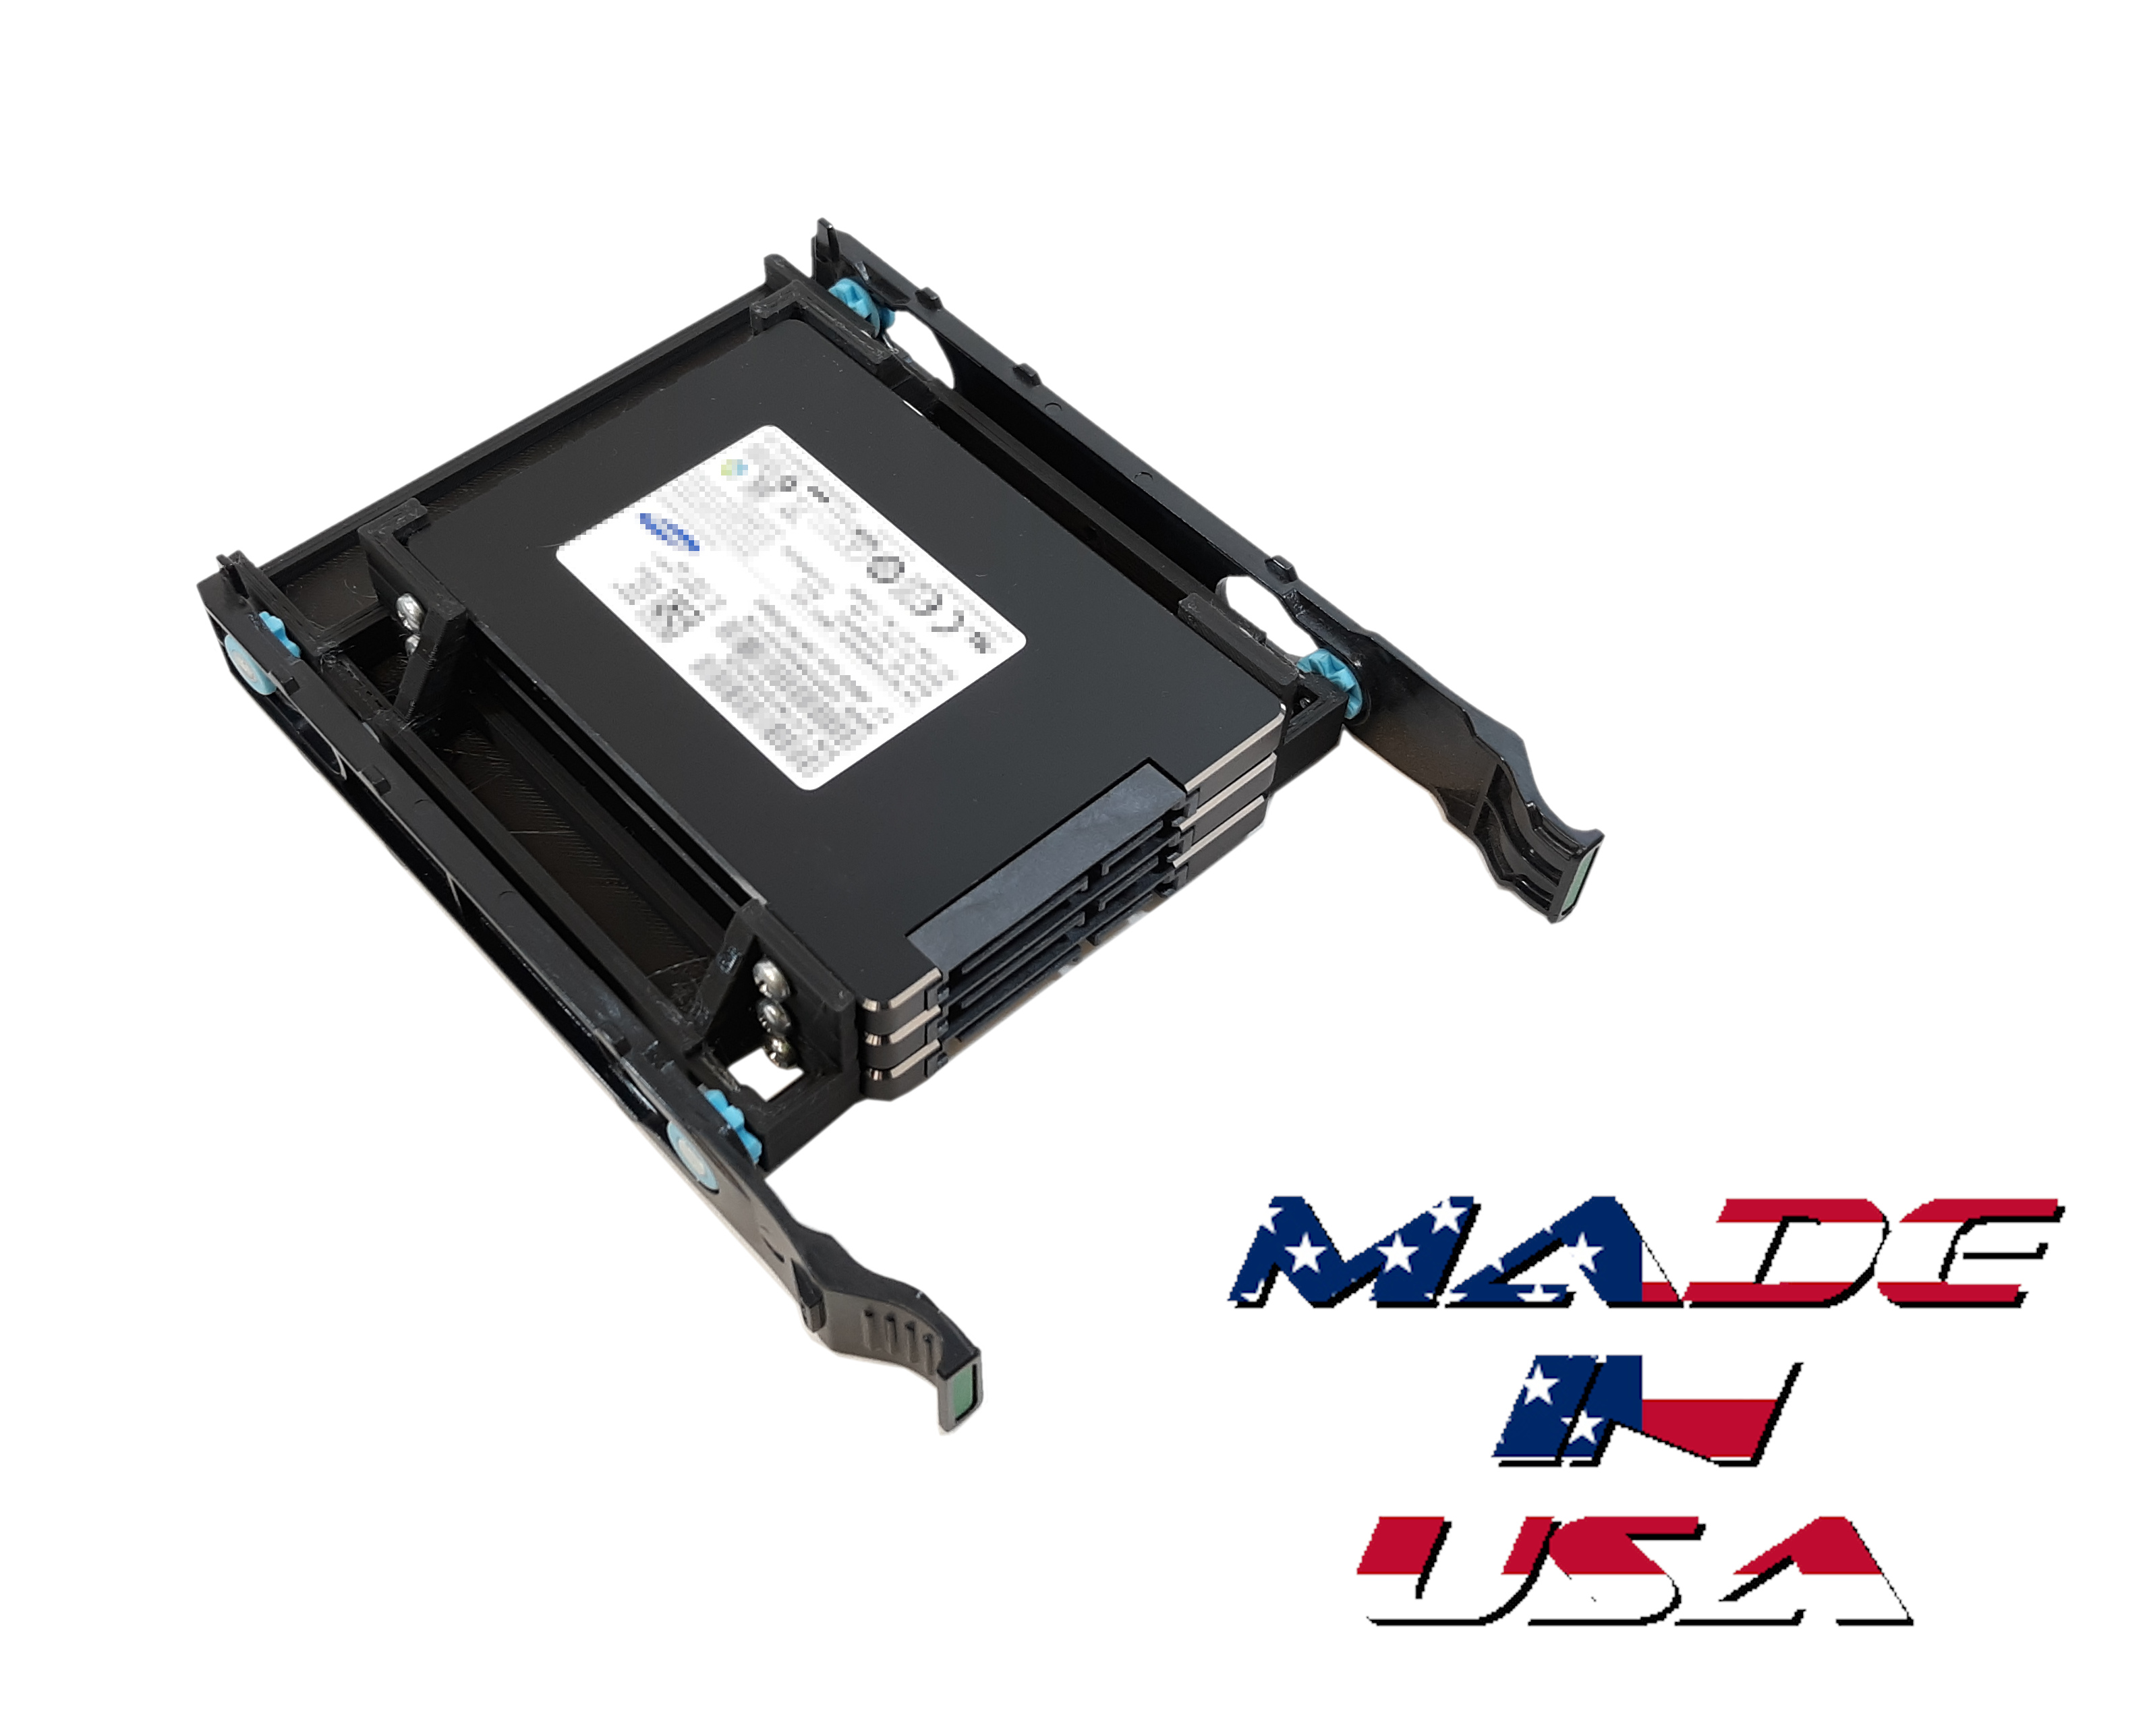 "Compeve SSD/HDD Carrier Adapter 2.5""-3.5"" 3xSSD For HP Z210 Z220 Z230 Z400 Z420"